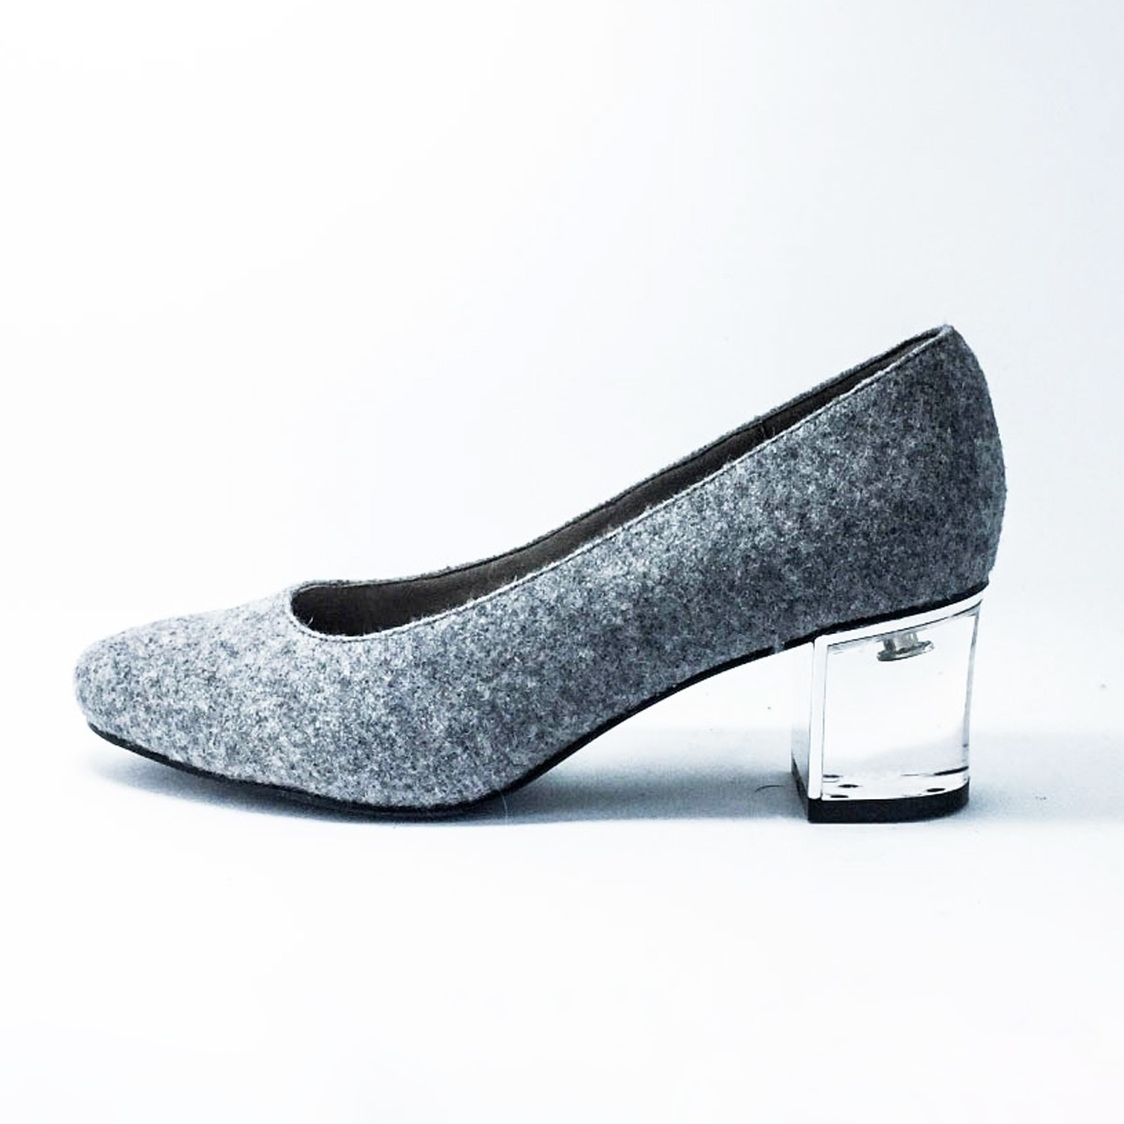 25 Round-Toe Clear Heel - Grey Textured